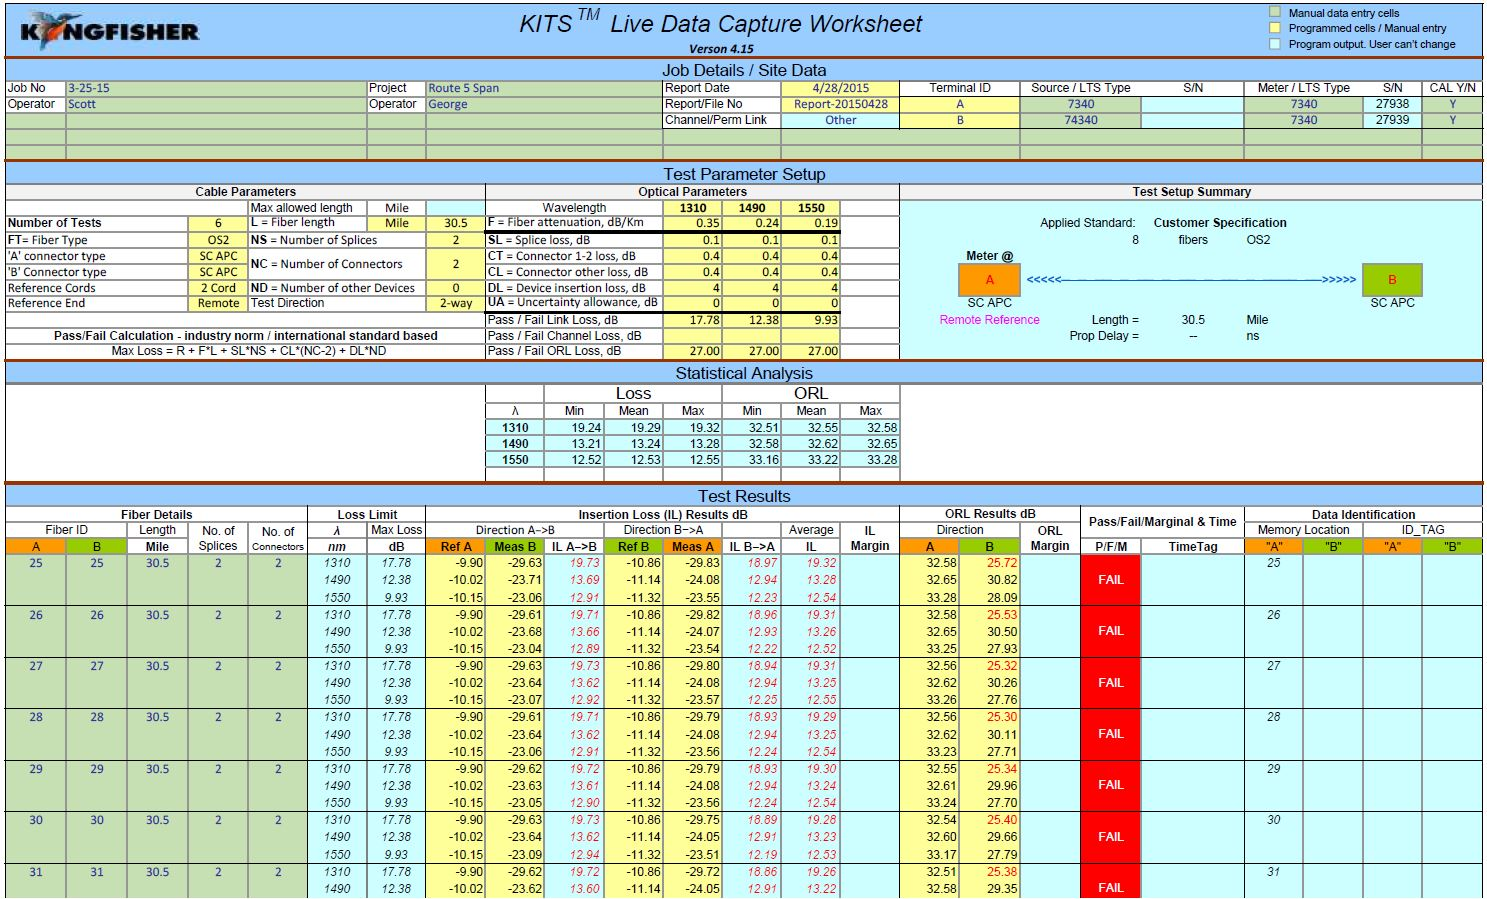 Software Testing Spreadsheet Template free download